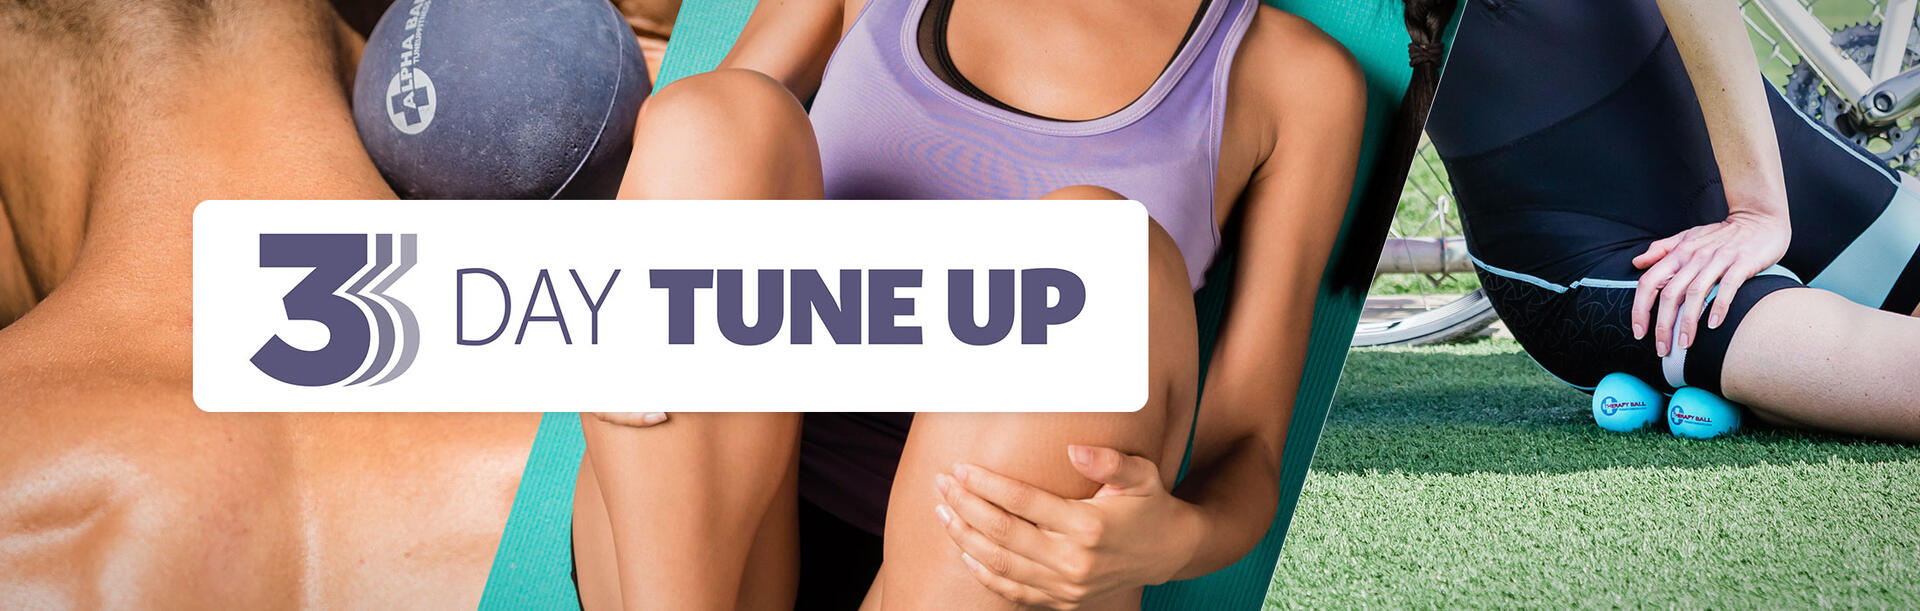 3-Day Tune Up